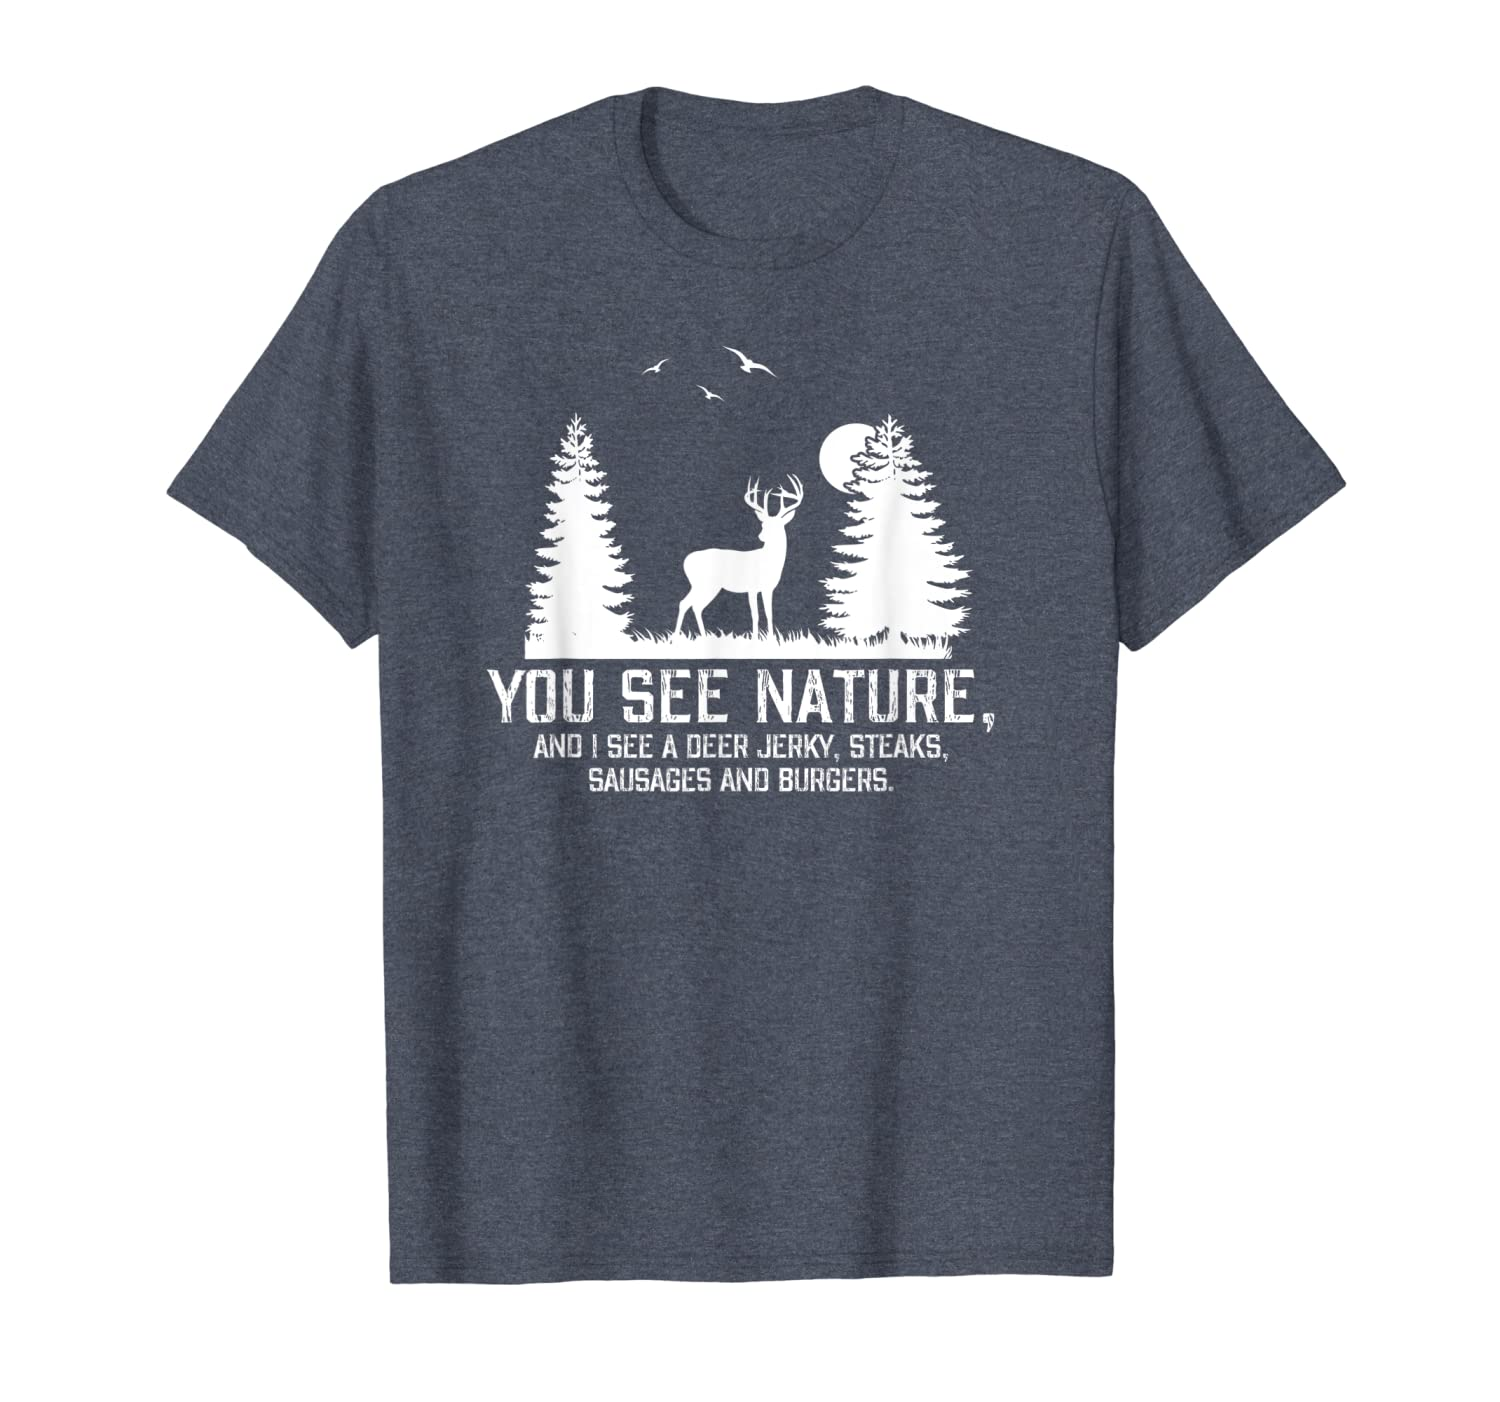 Hunting Shirts For Men You See Nature Funny Hunting Gifts T-Shirt Unisex Tshirt